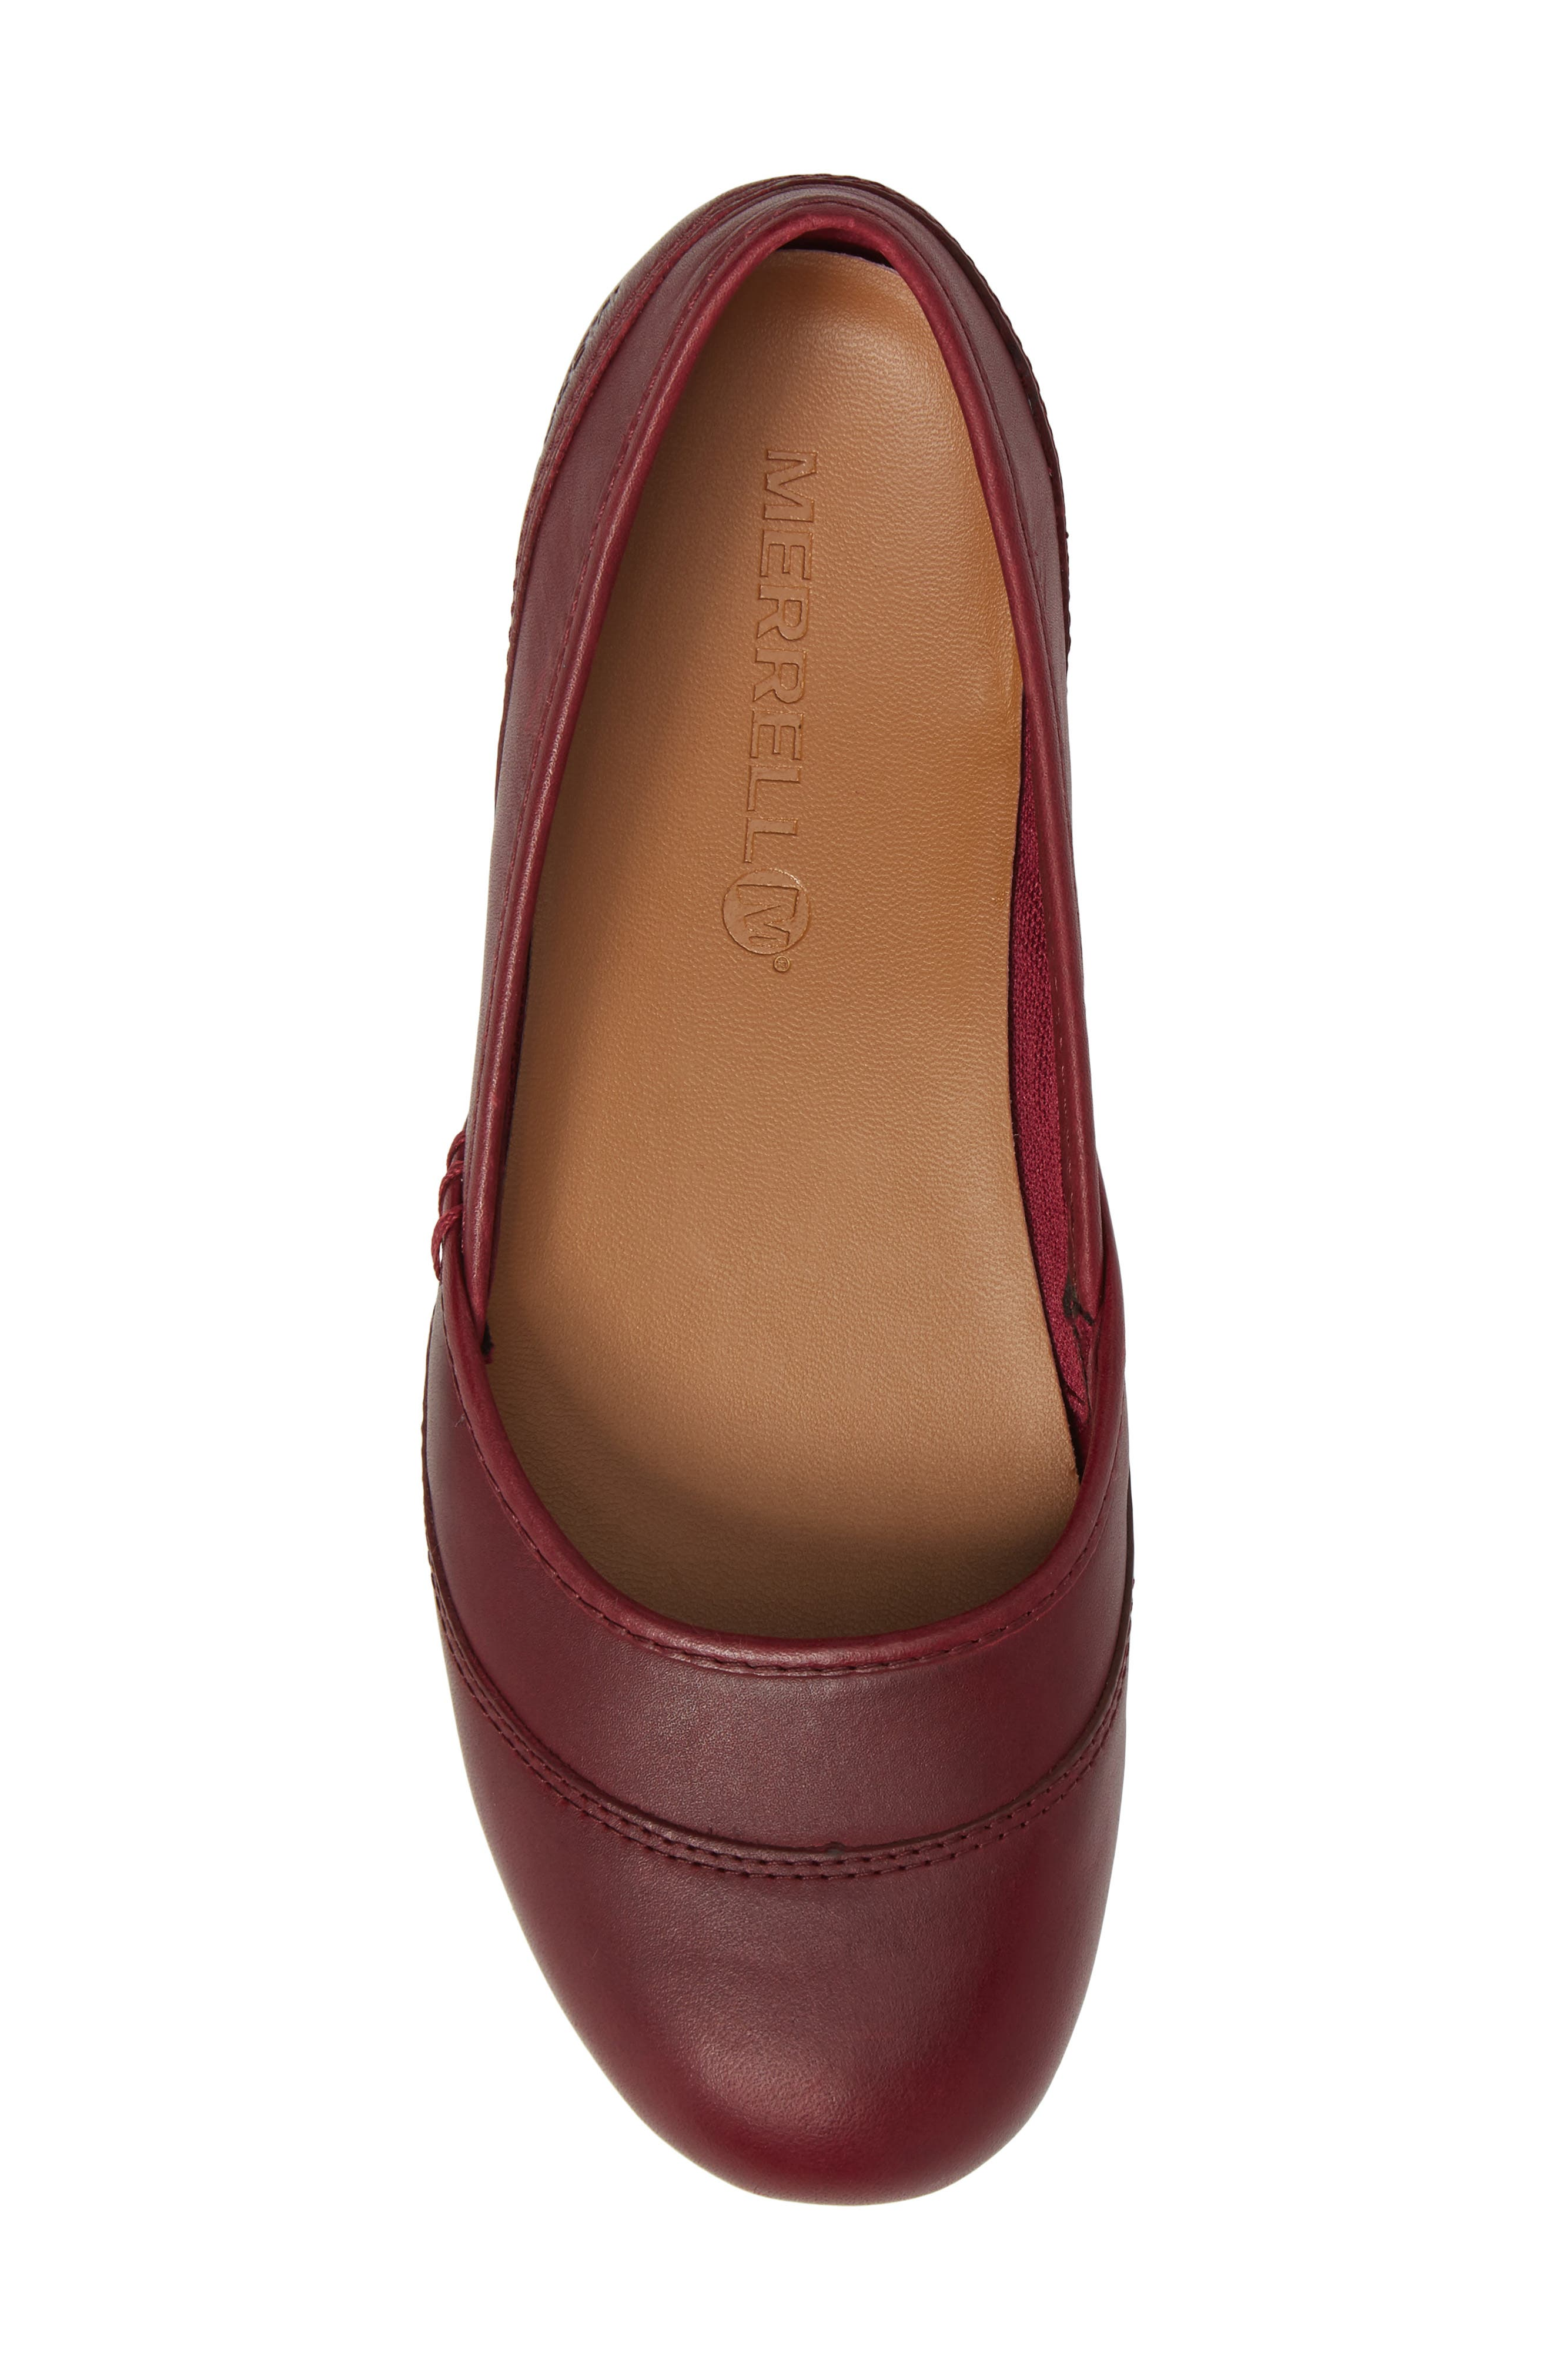 Ember Ballet Flat,                             Alternate thumbnail 5, color,                             Beet Red Leather